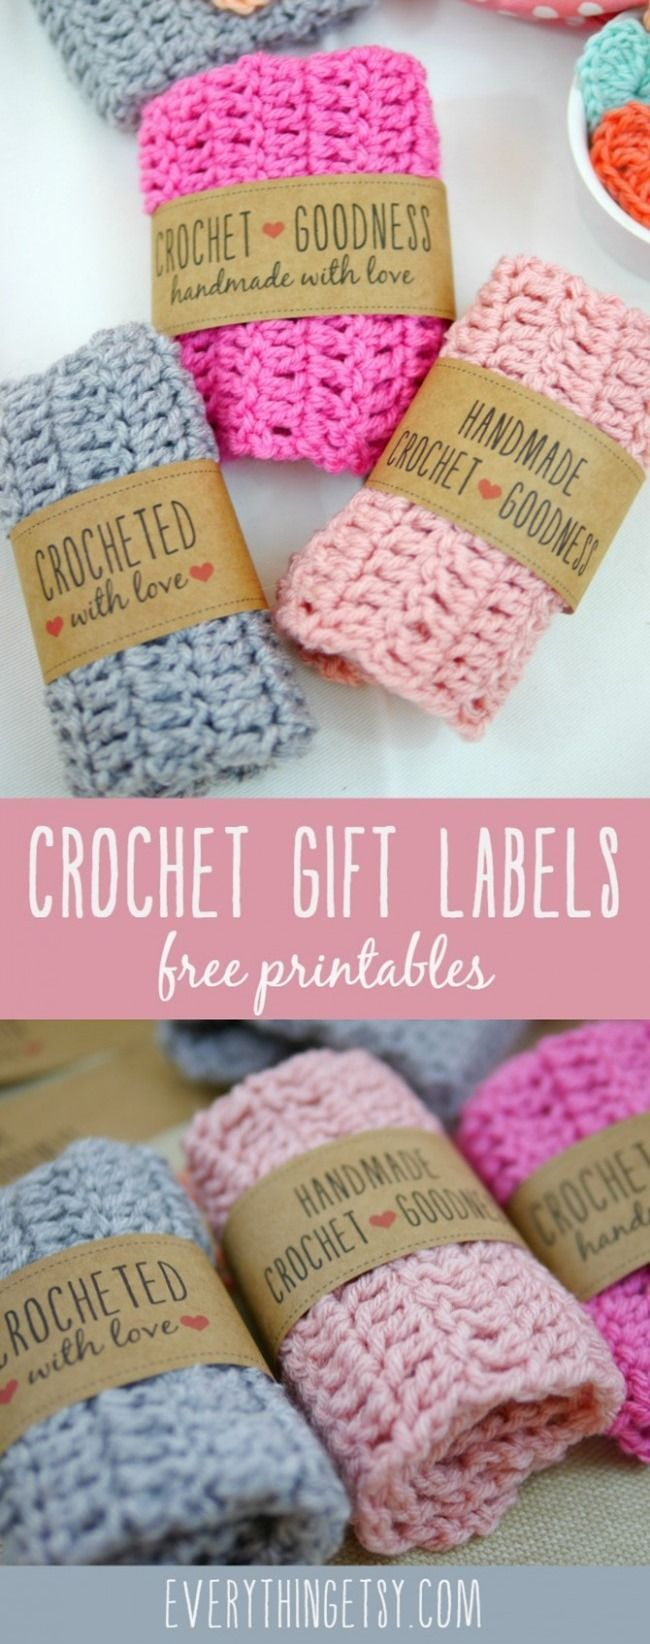 10 Free Coffee Cozy Crochet Patterns Looking for a quick DIY gift idea? …